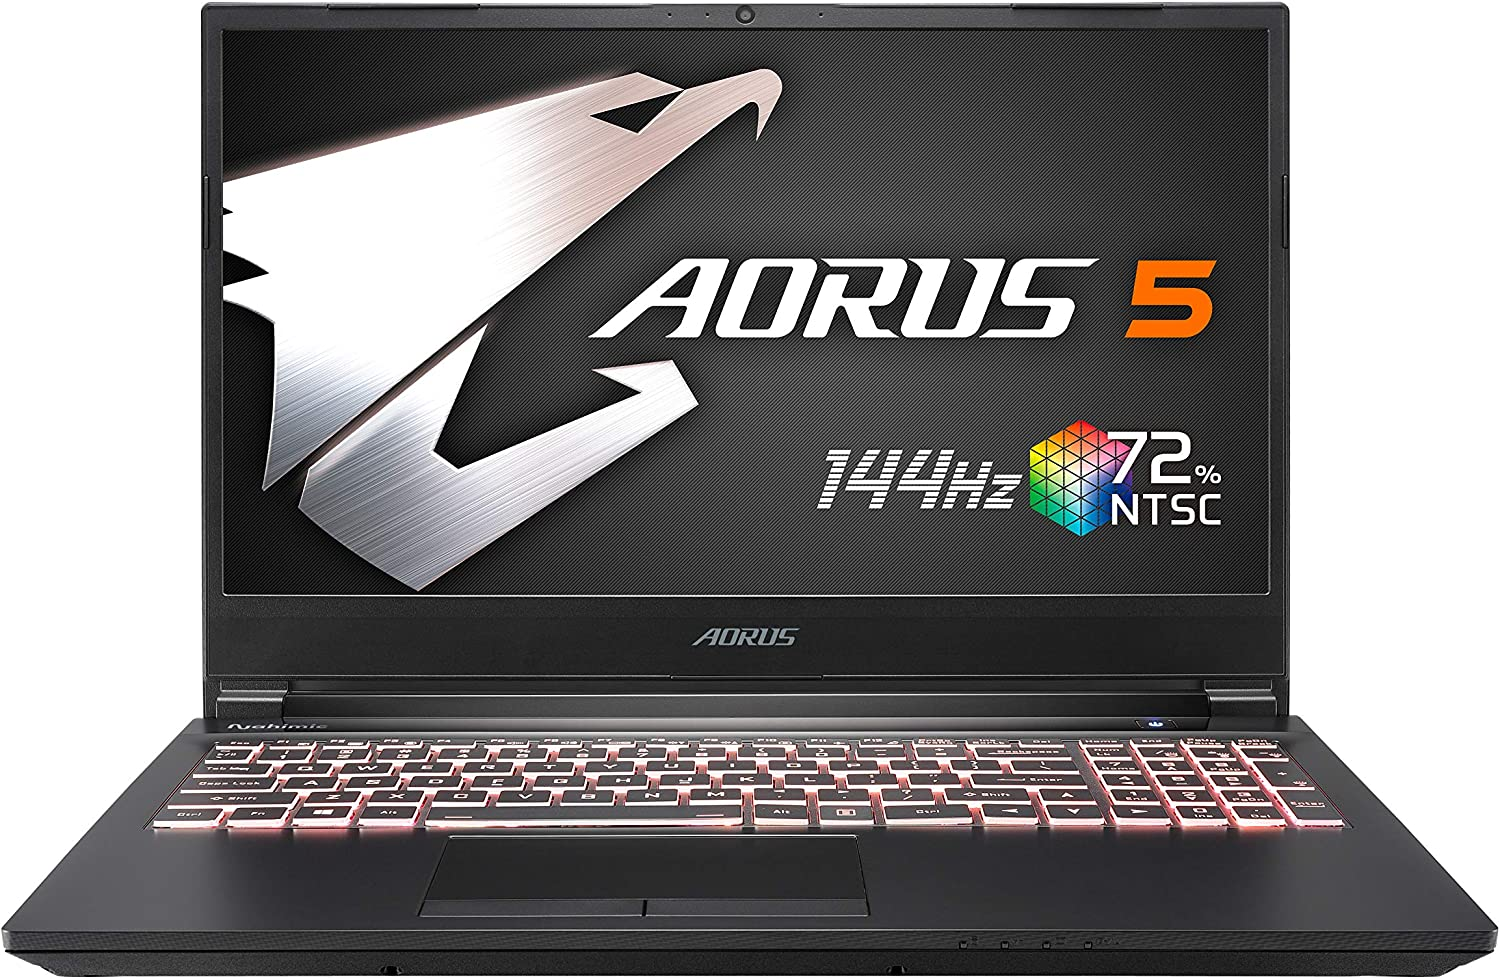 [2020] AORUS 5 (SB) Gaming Laptop, 15.6-inch FHD 144Hz IPS, GeForce GTX 1660 Ti, 10th Gen Intel i7-10750H, 16GB DDR4, 512GB NVMe SSD